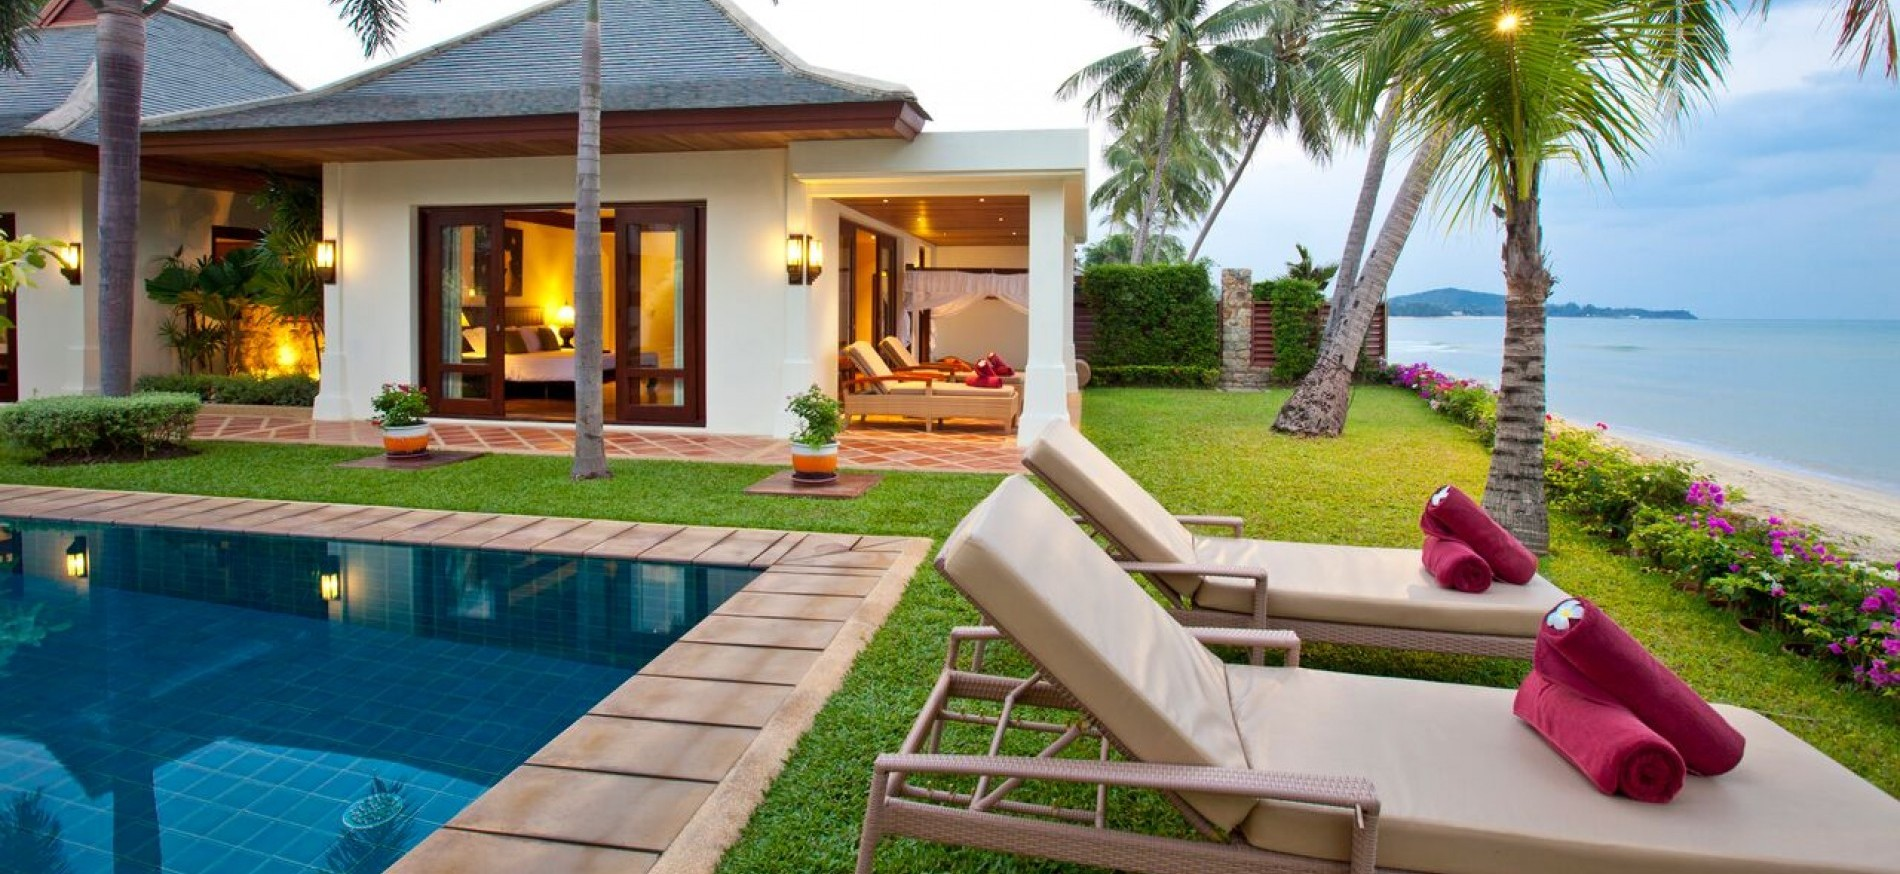 Luxury-Villa-Waterlily-5-Bedroom-Beachfront